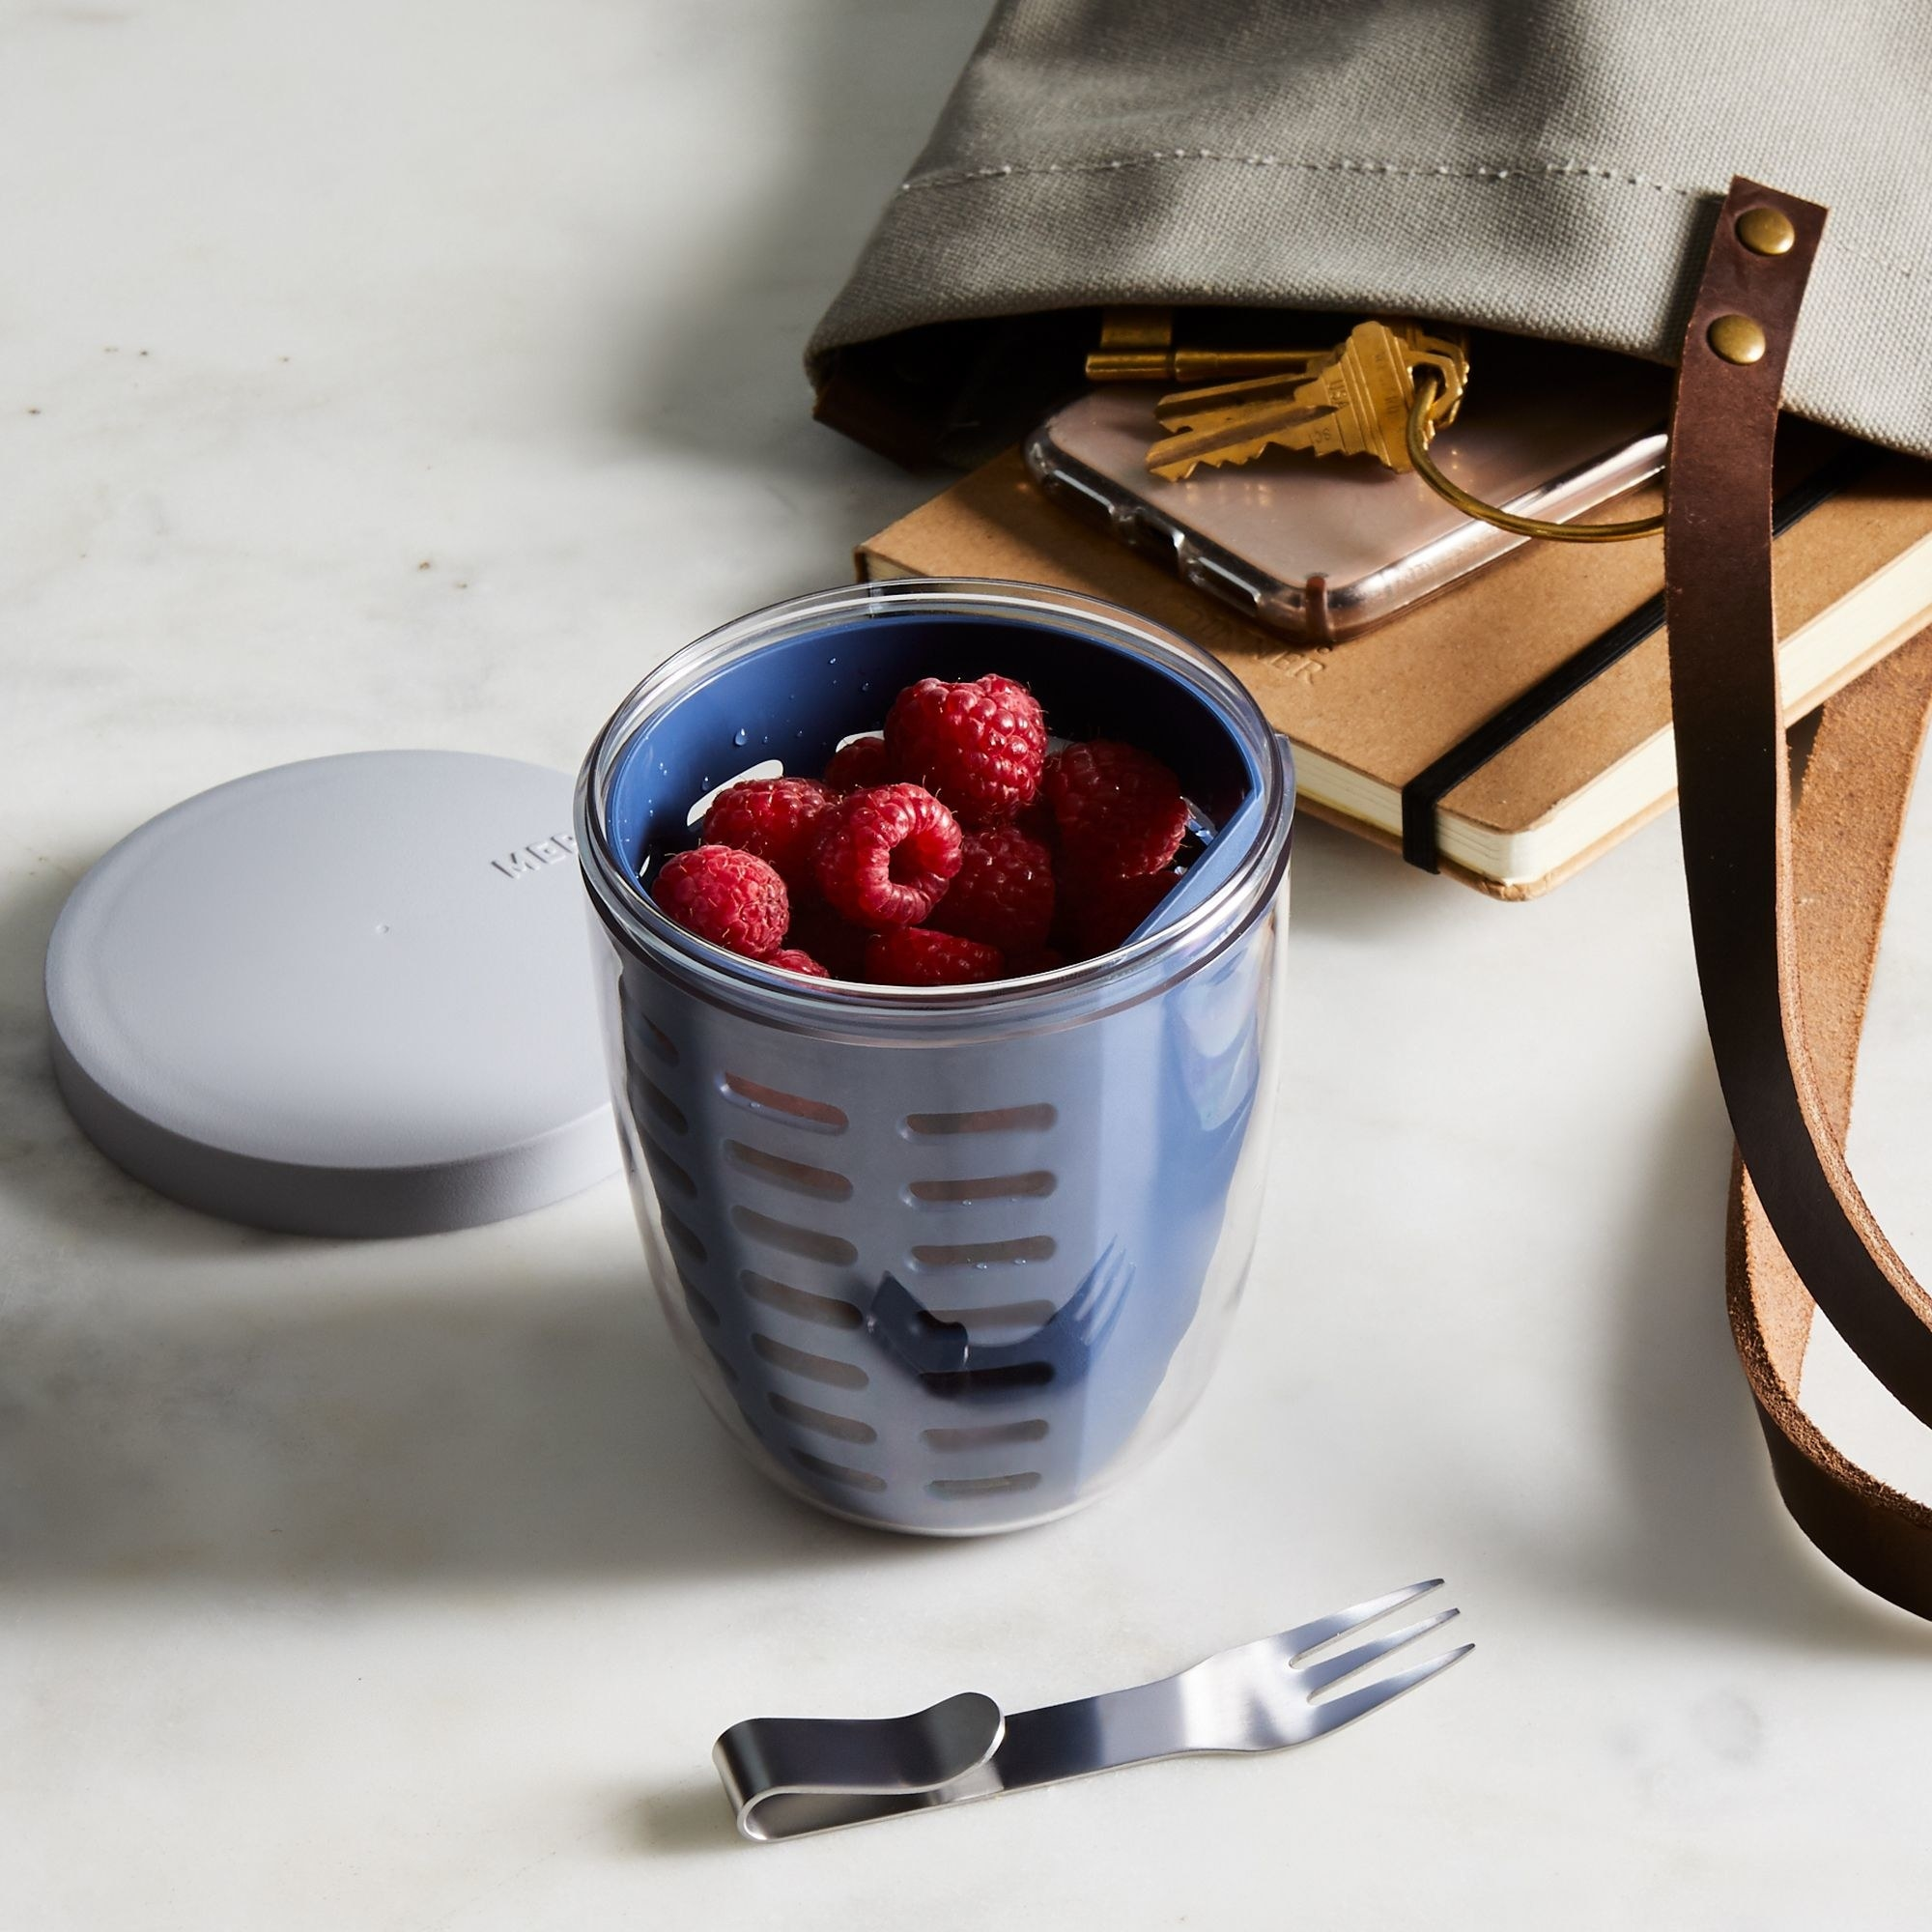 raspberries in clear plastic cup with dark blue colander insert and tiny fork